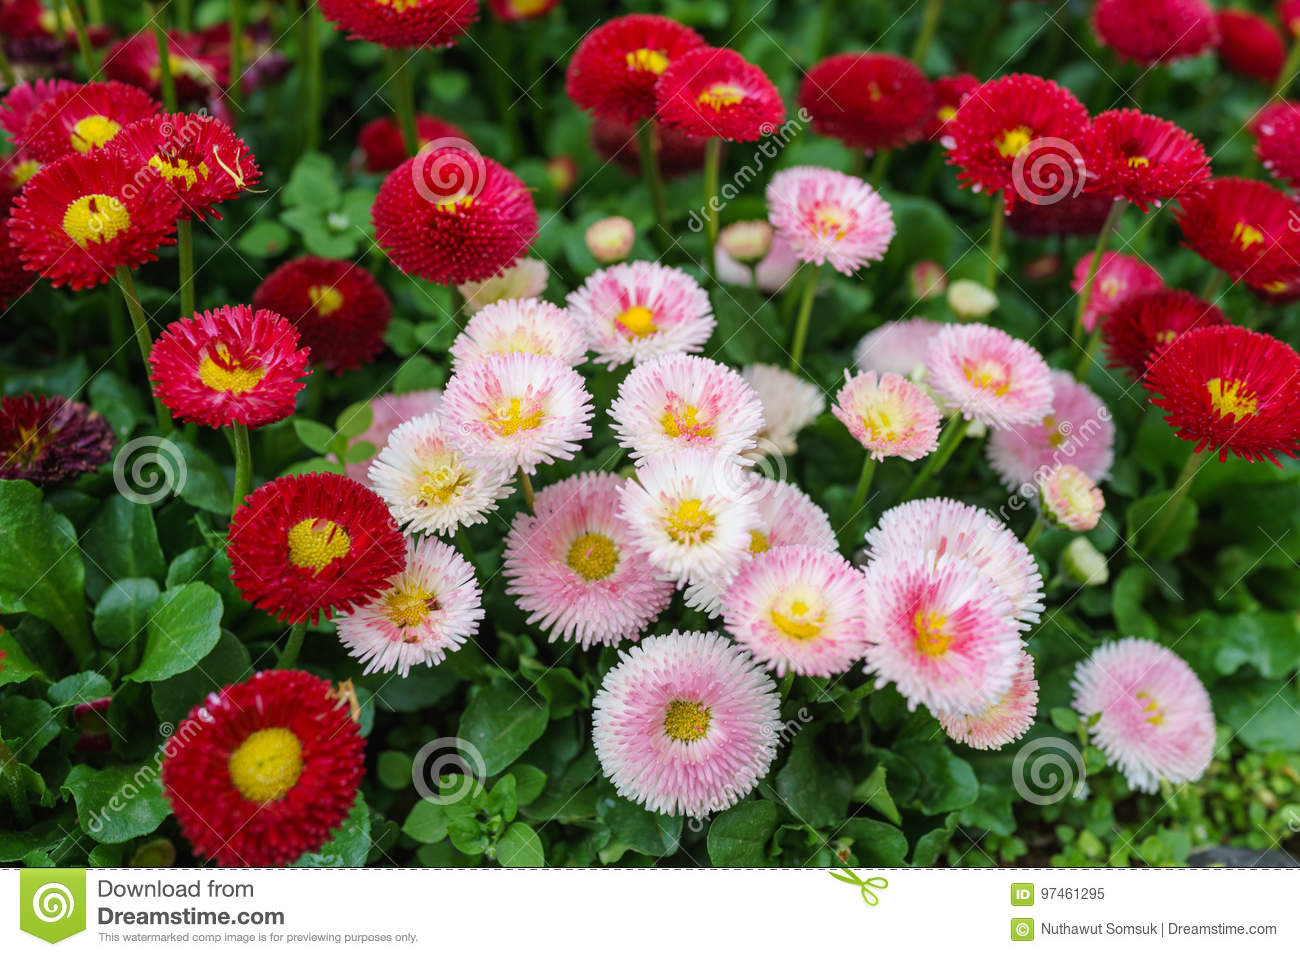 Pink white and red english daisy flower in outdoor park day lig download pink white and red english daisy flower in outdoor park day lig stock image izmirmasajfo